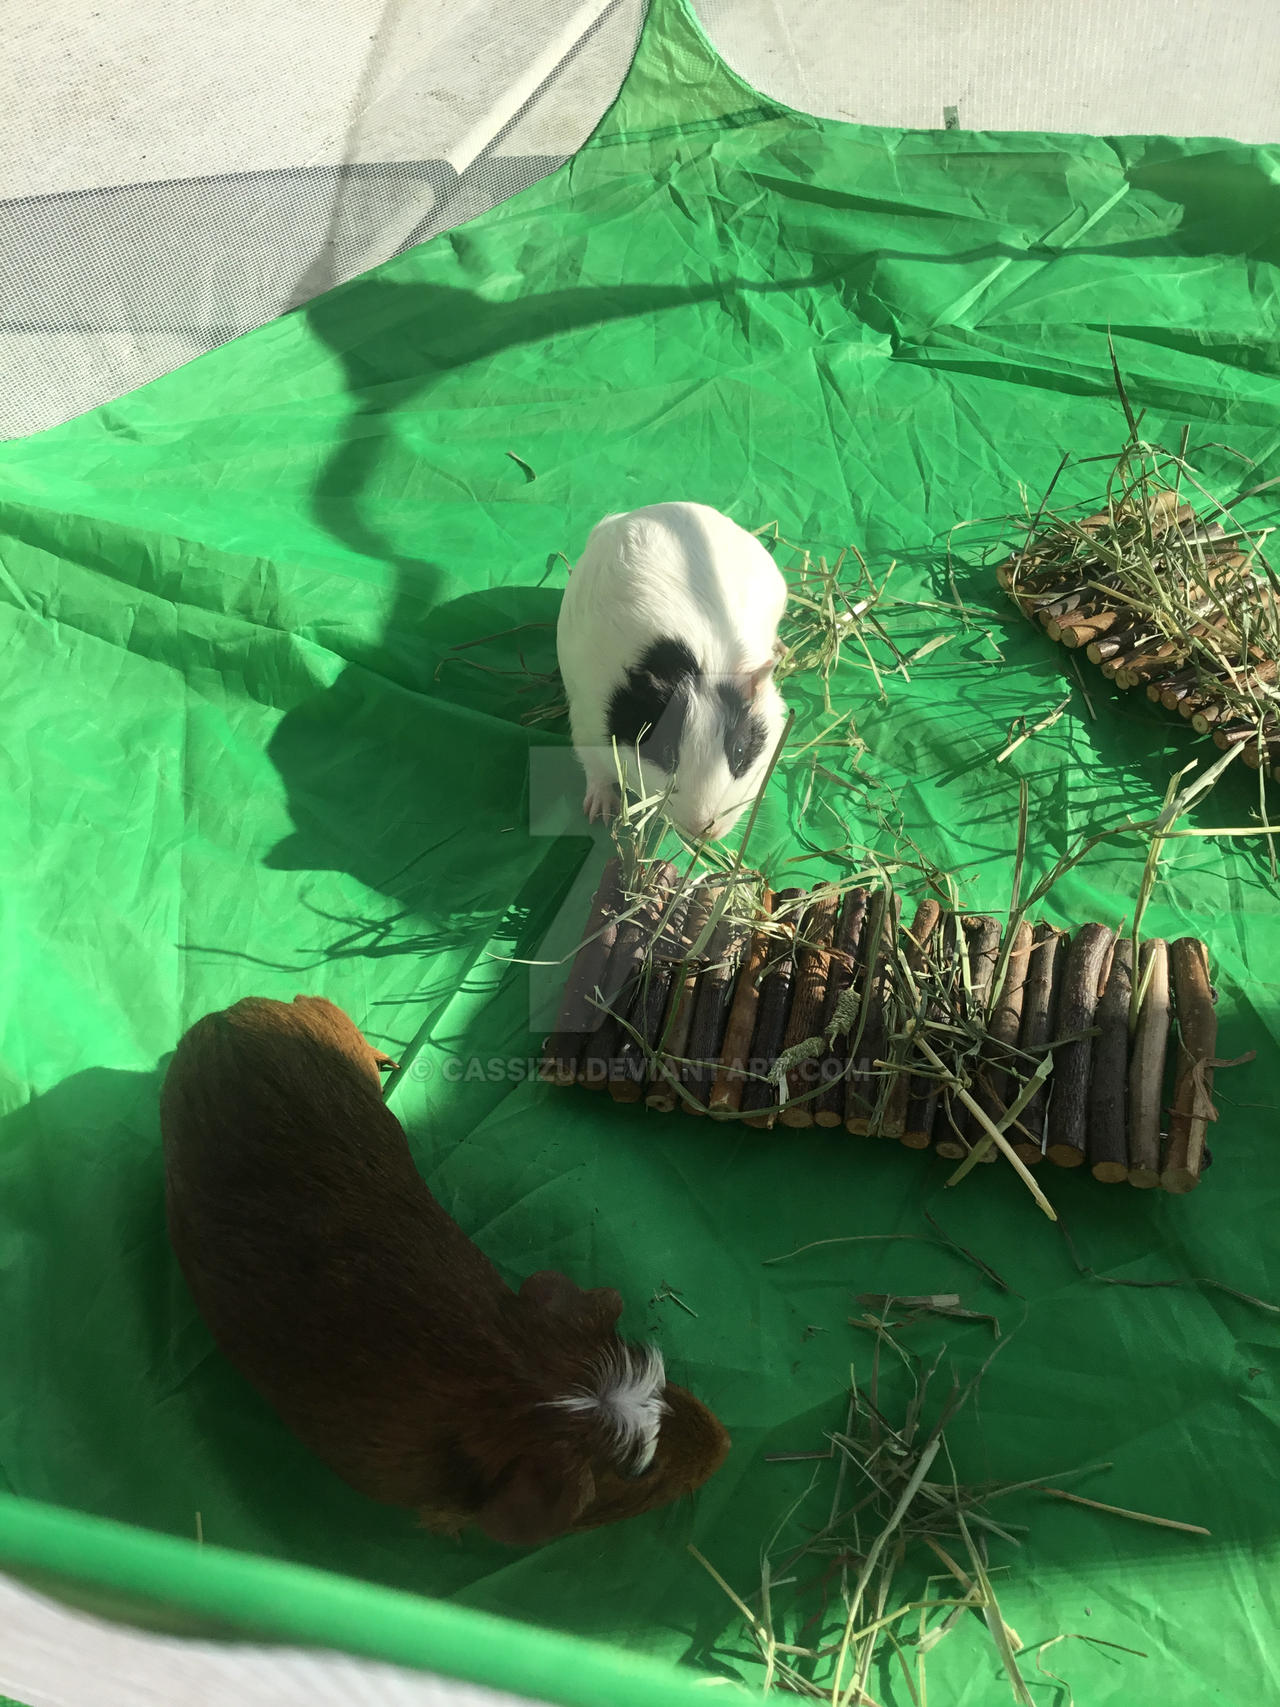 The guinea pigs got to play outside